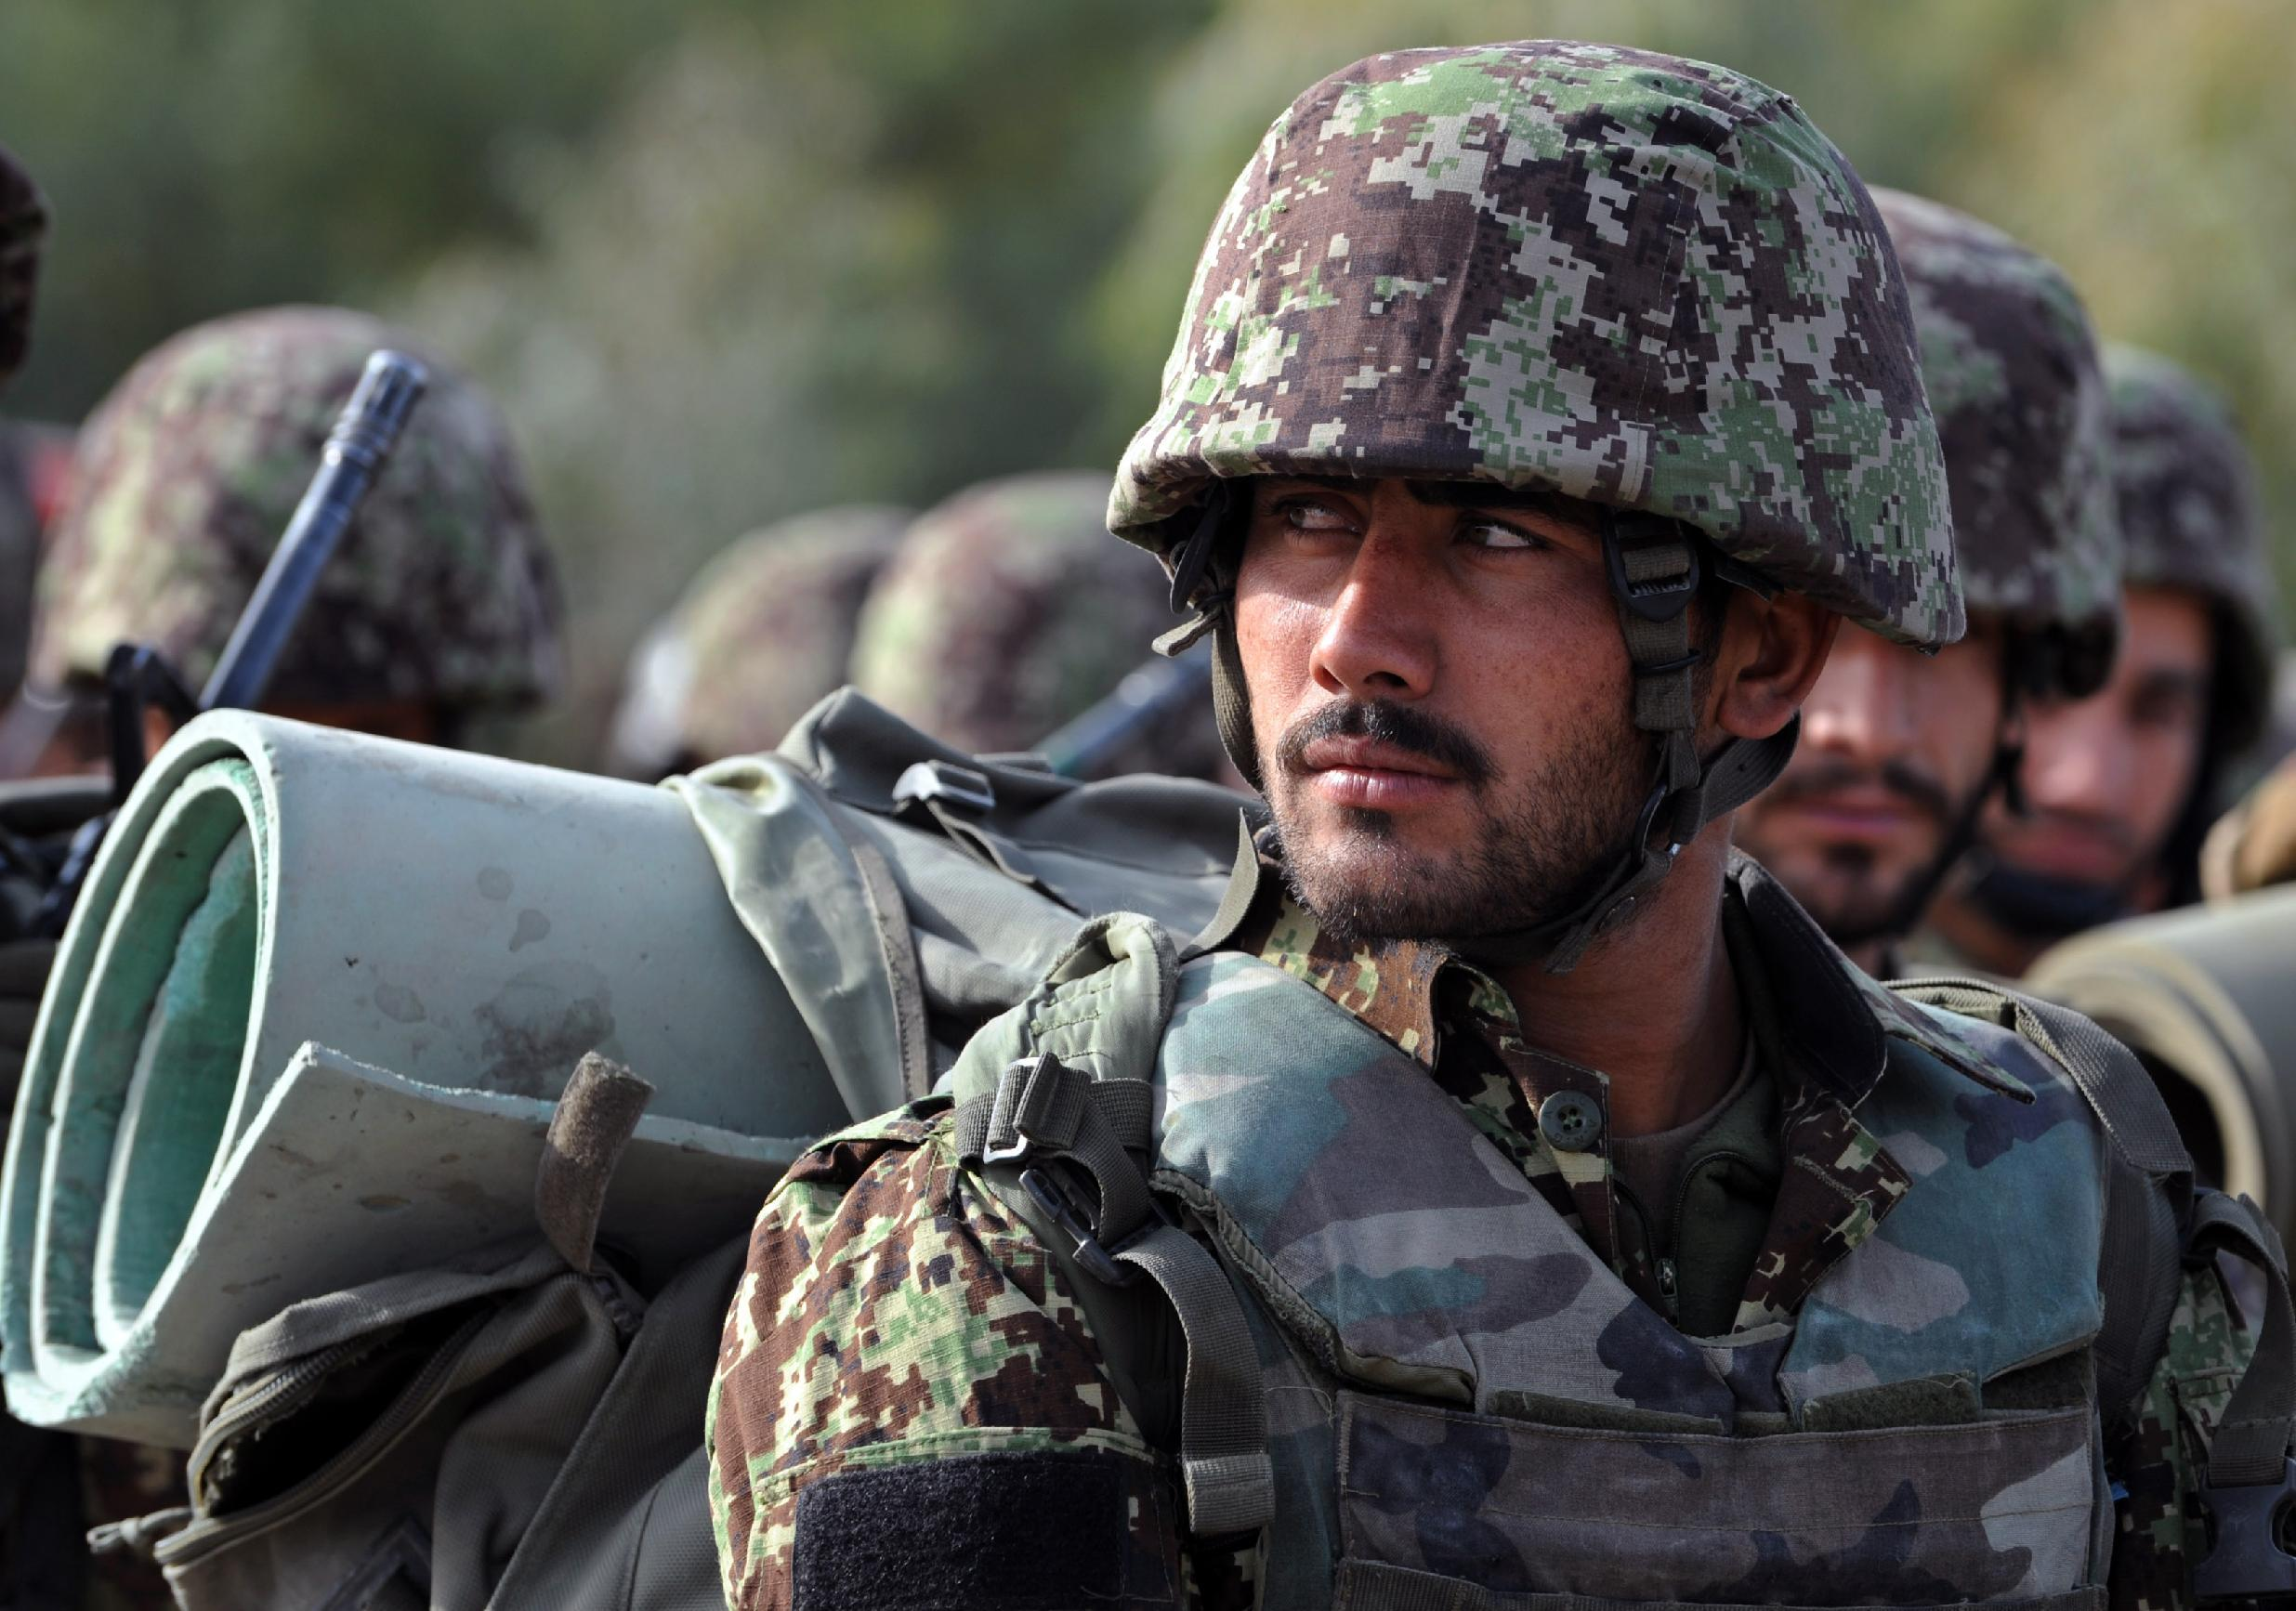 Afghan National Army soldiers in Kandahar province on January 11, 2015 (AFP Photo/Javed Tanveer)